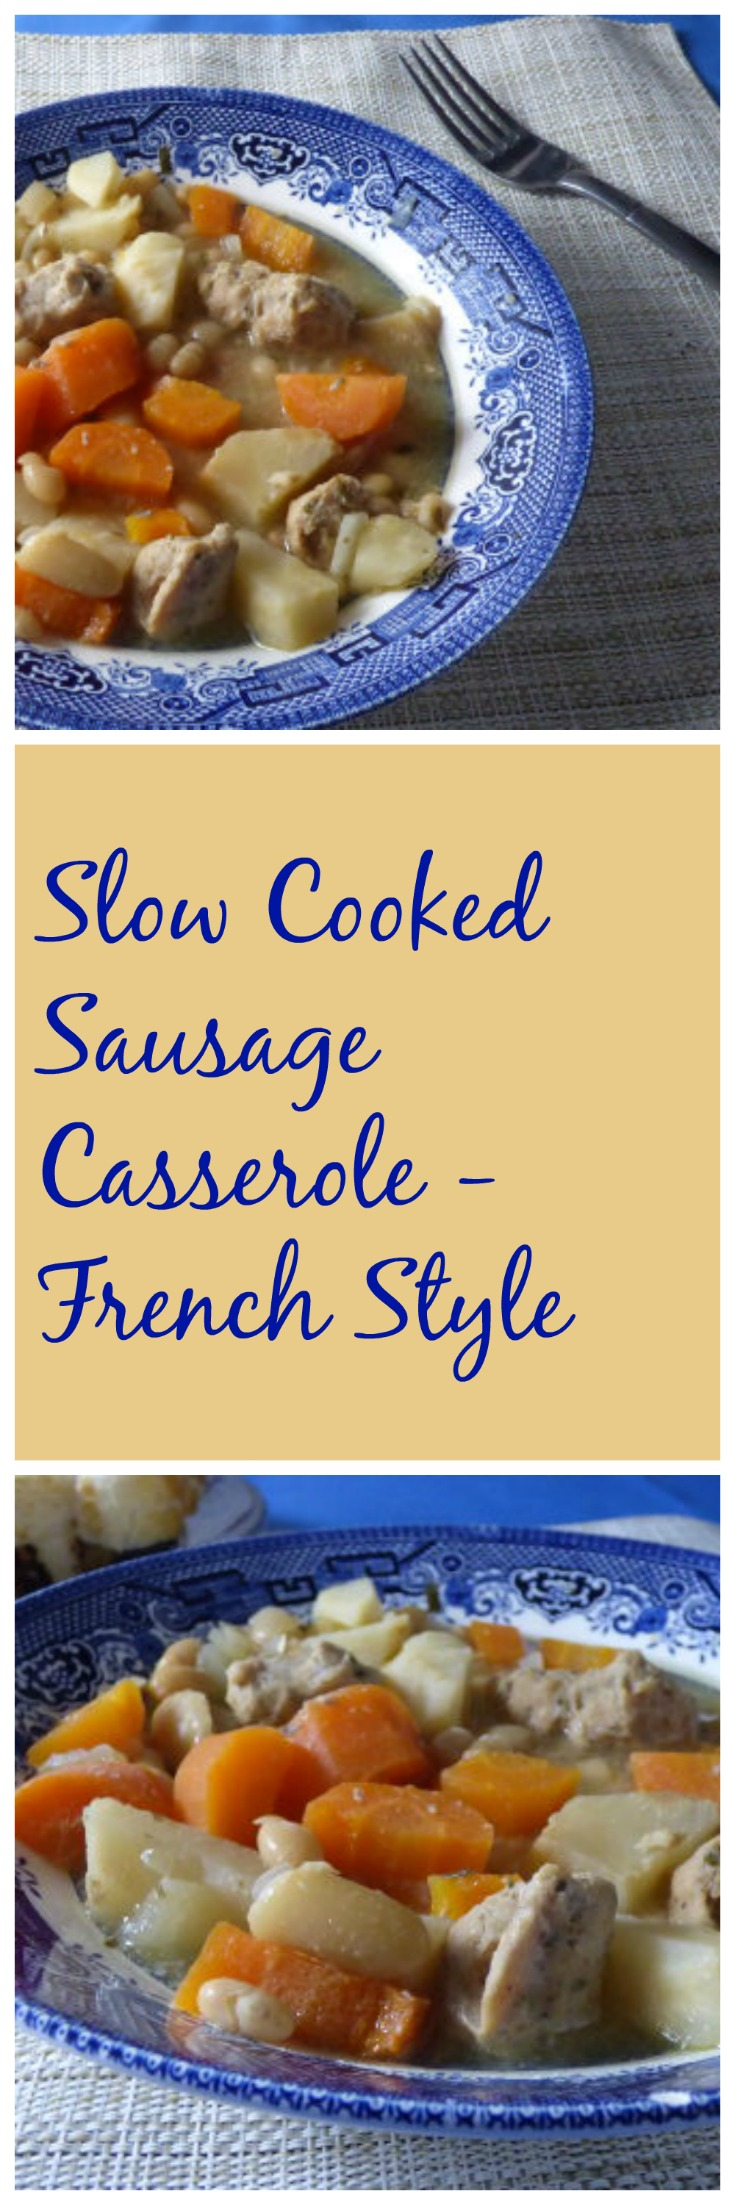 slow cooker sausage casserole french style long